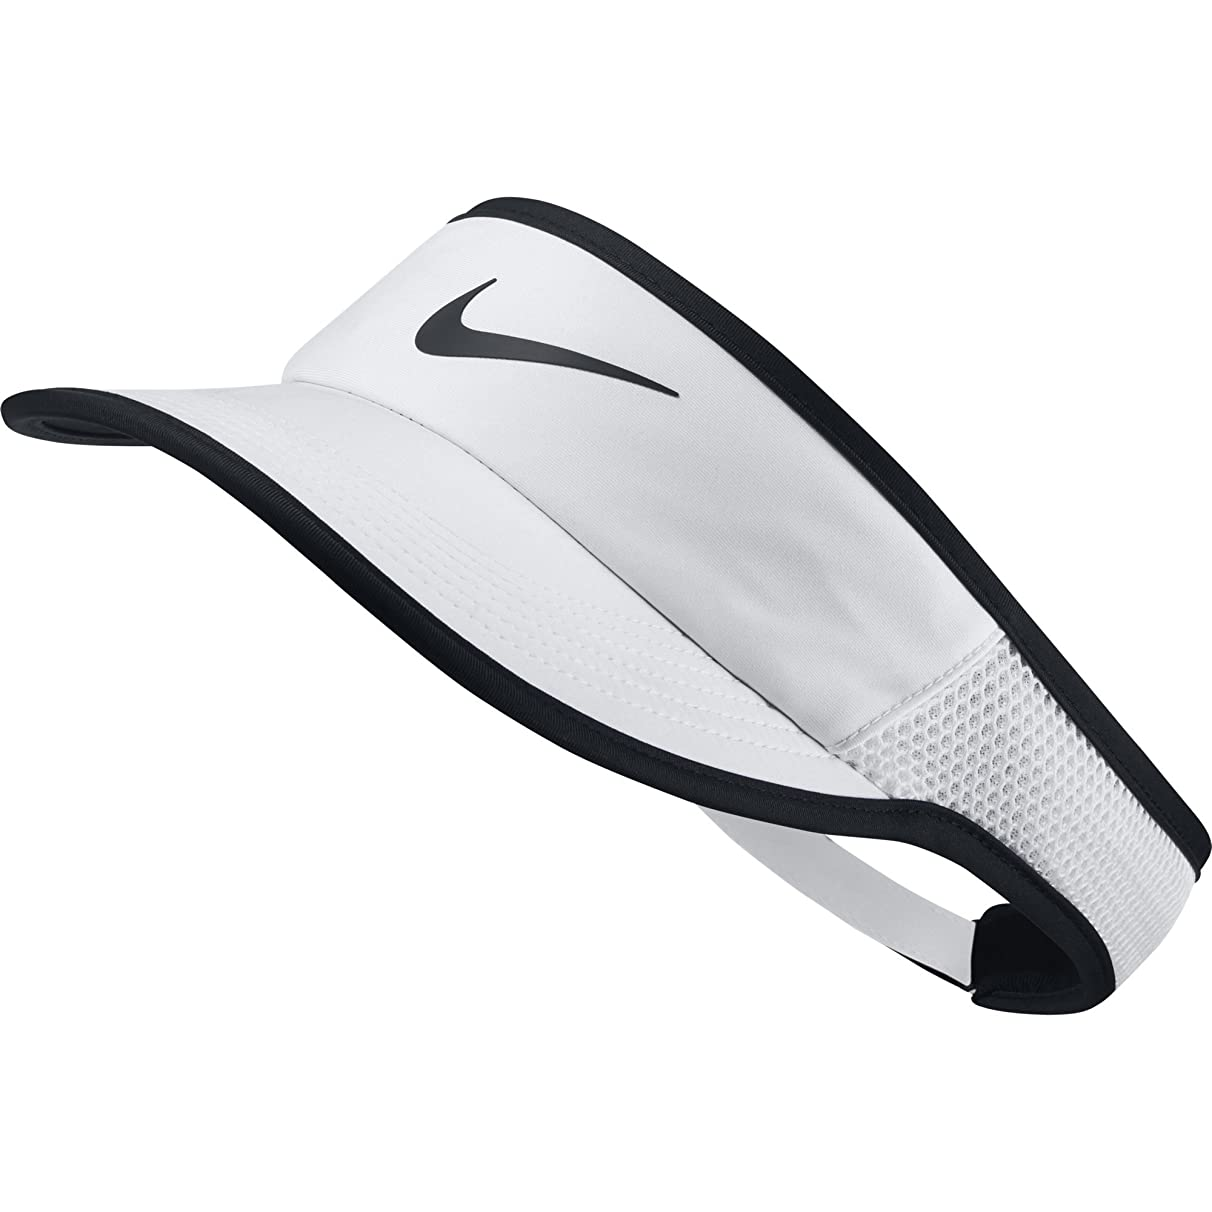 NIKE Women's Aerobill Featherlite Adjustable Visor